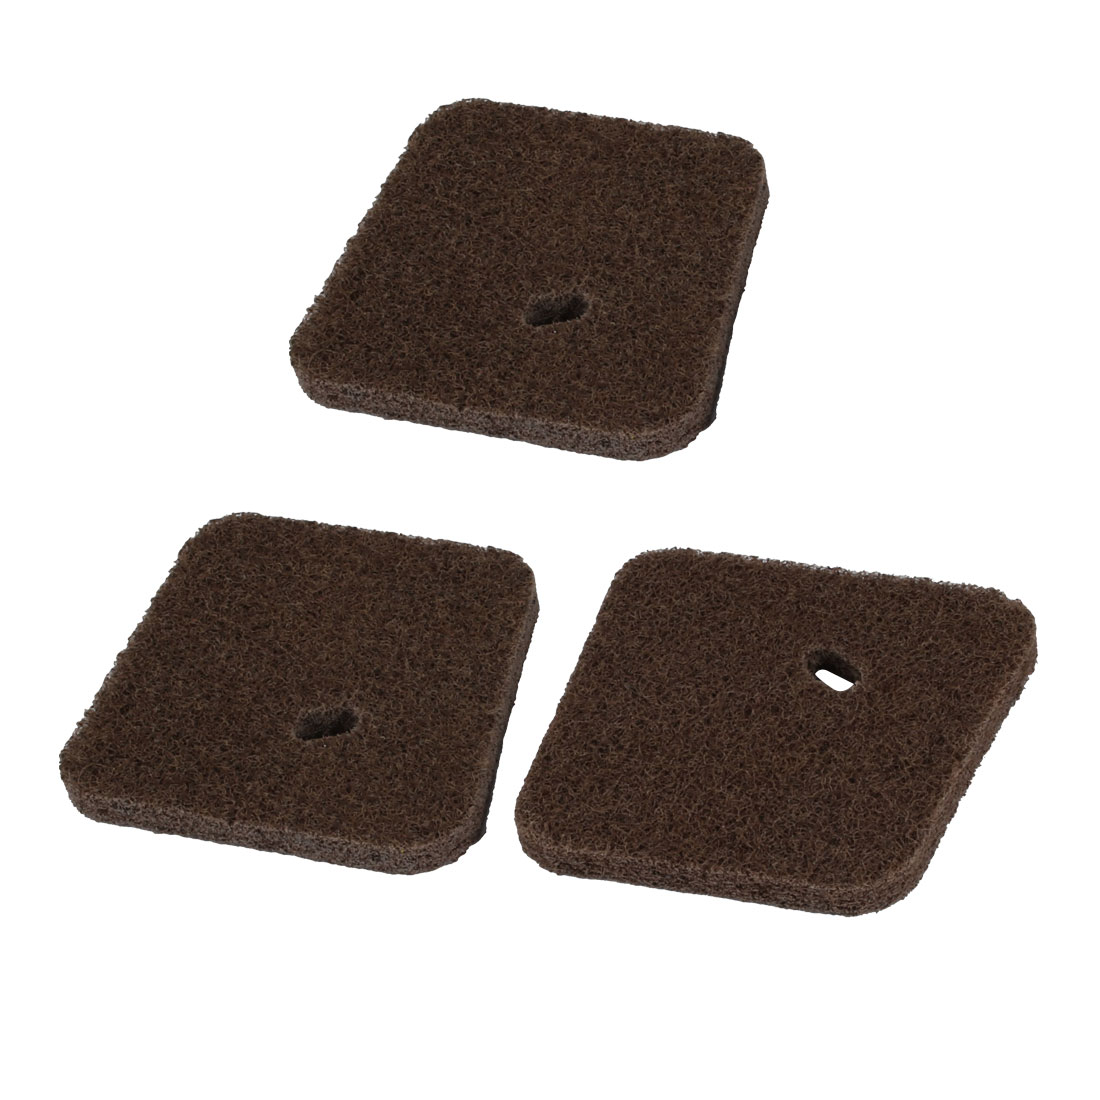 3pcs Replacement Parts Cotton Air Filter Cleaner for FS55 String Trimmer